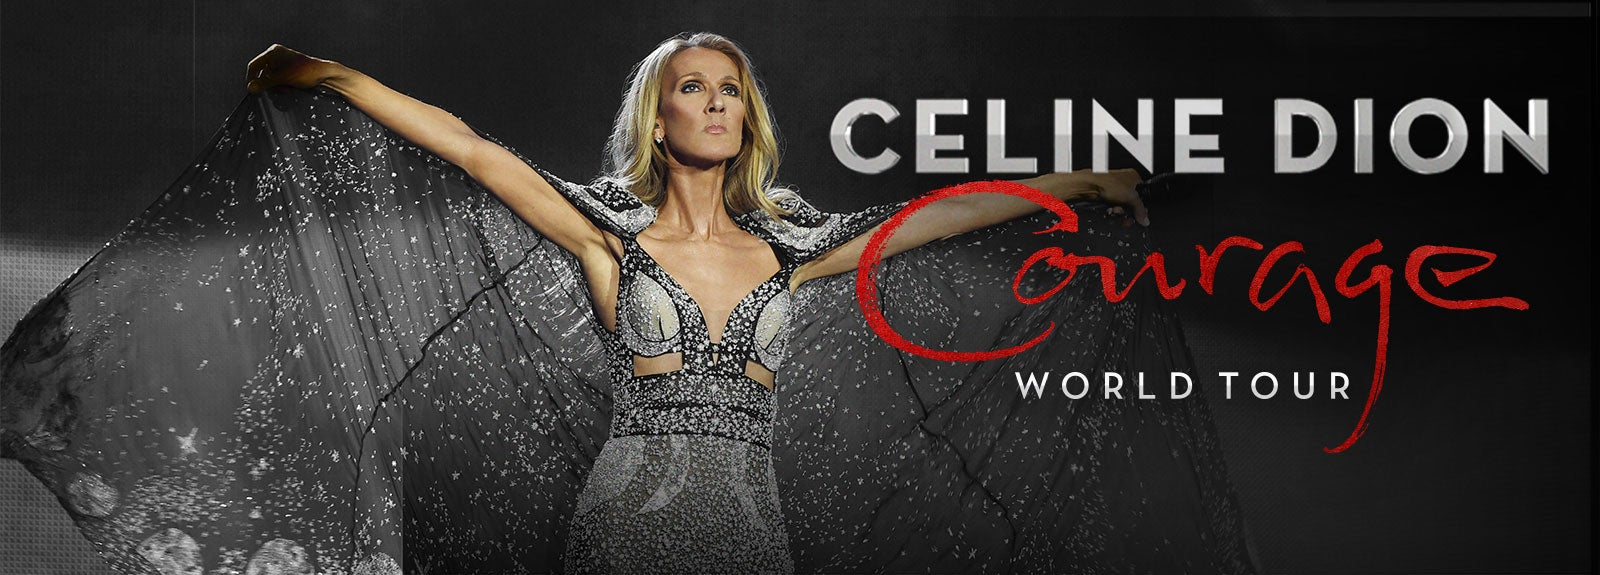 celine dion courage - photo #11